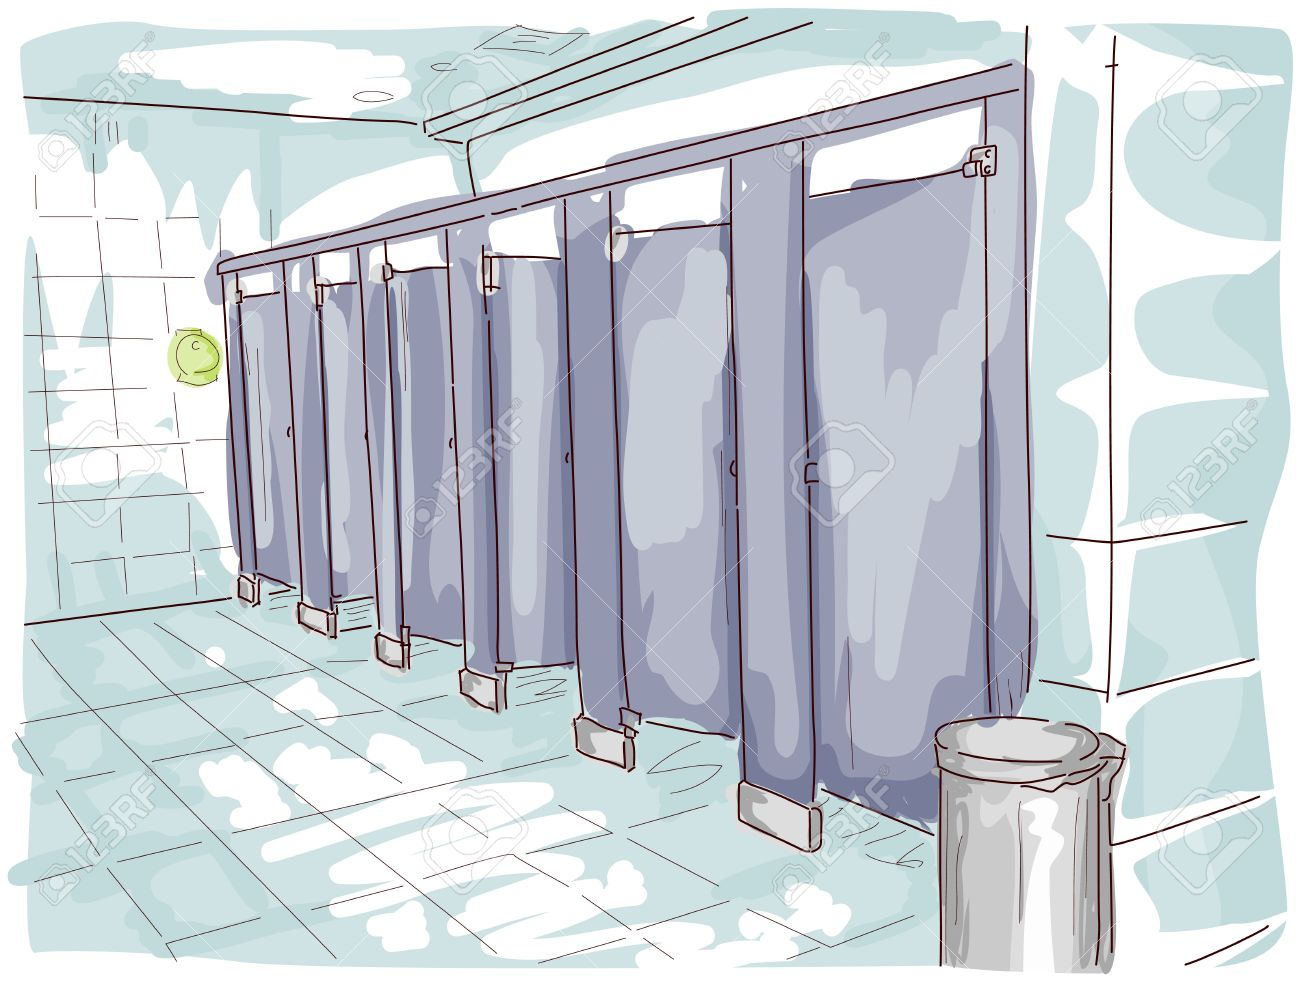 Public Toilet Illustration Stock Photo Picture And Royalty Free